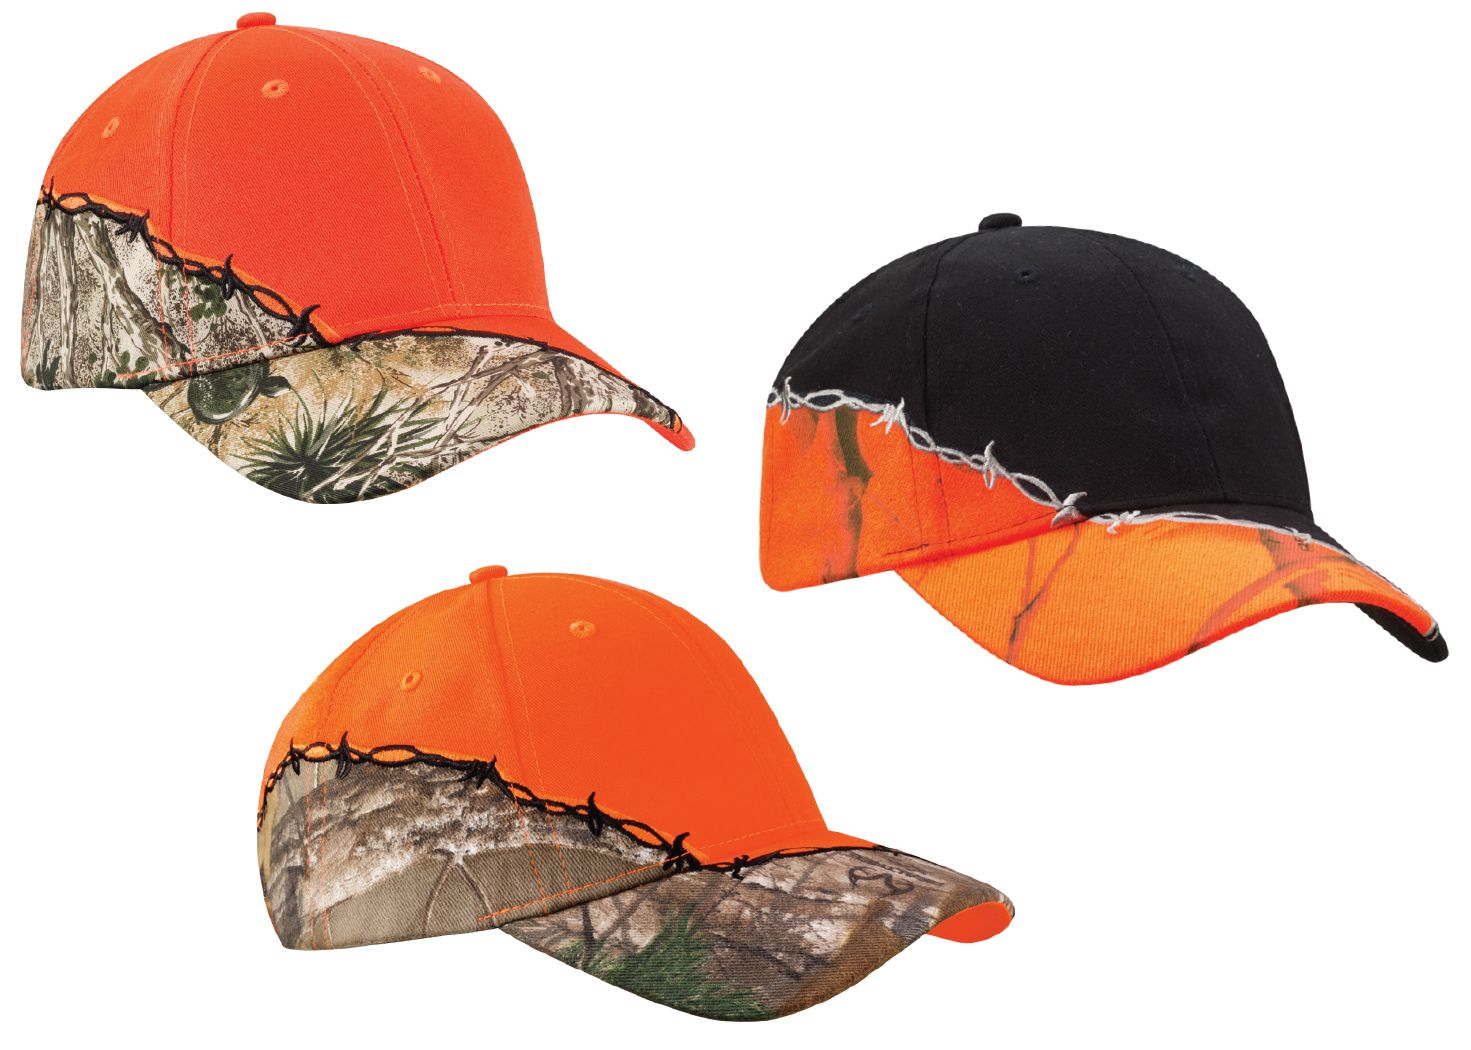 3276ea7eb Barbed wire embroidery shows you're dangerous. Camo shows you're enigmatic.  And blaze orange? You're into safety. No matter your mood, this hat has you  ...